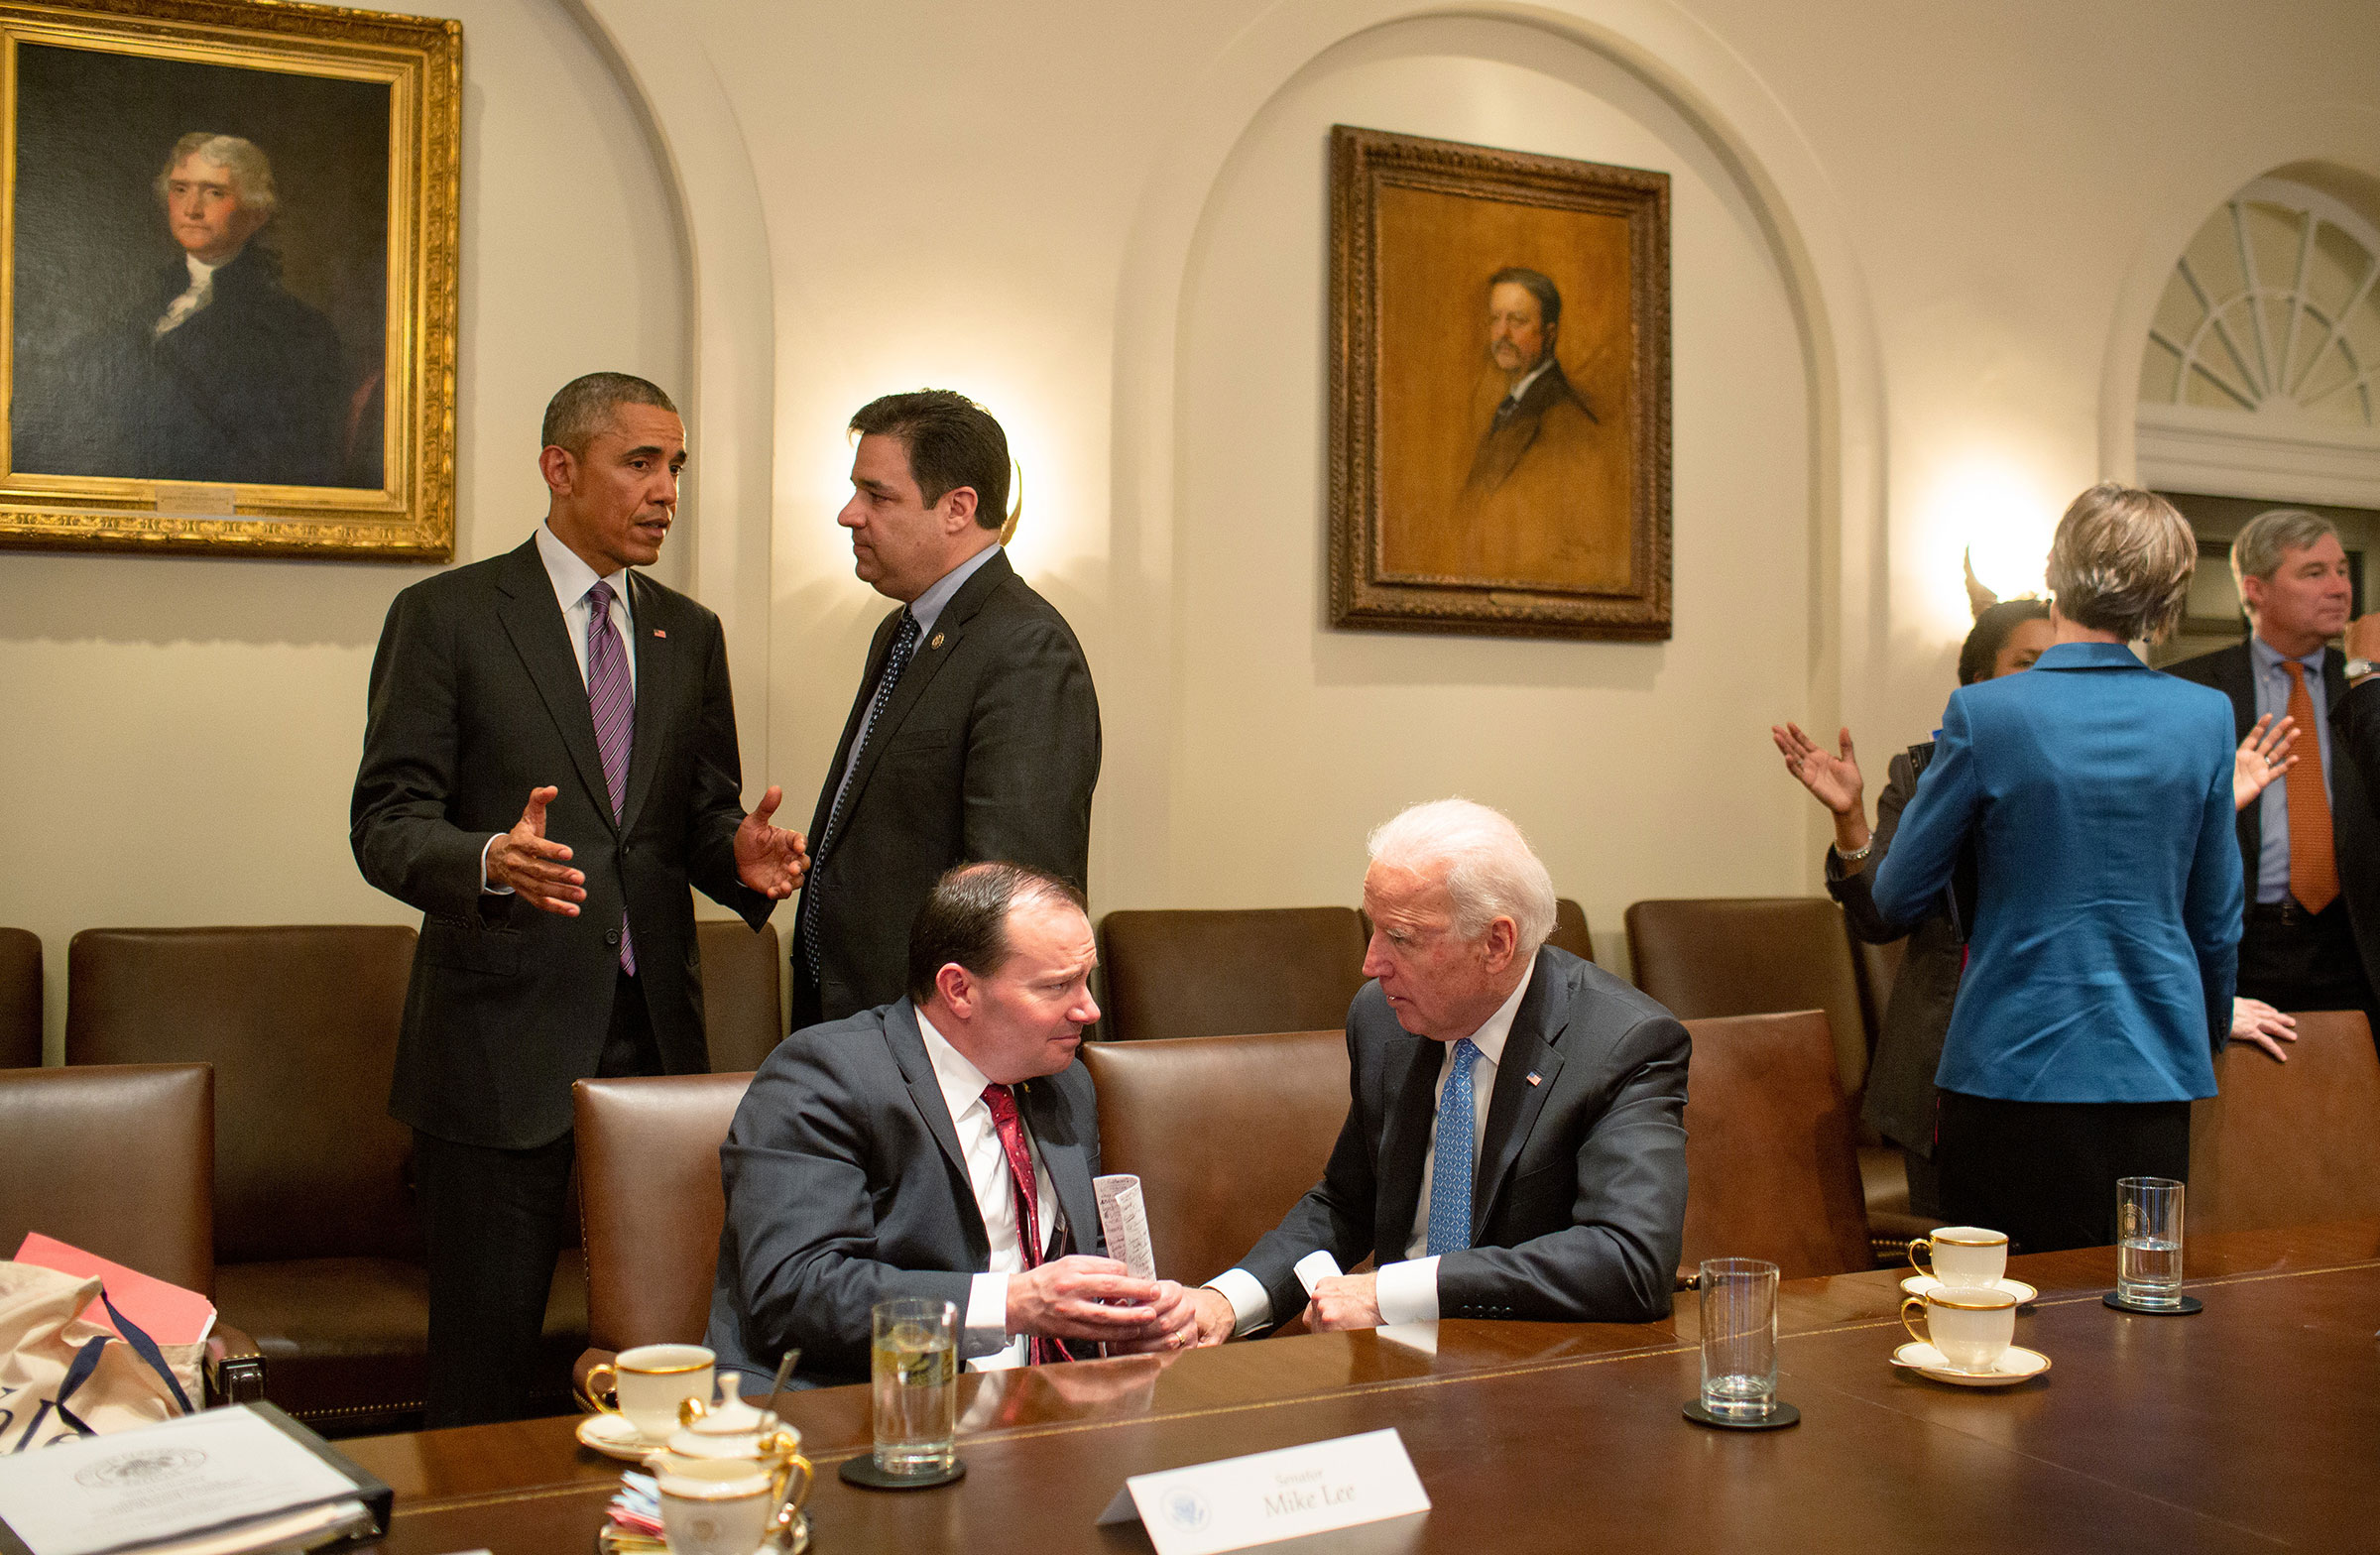 President Barack Obama talks with Rep. Rual Labrador as Vice President Joe Biden talks with Sen. Mike Lee following a meeting with bipartisan Members of Congress to discuss criminal justice reform, in the Cabinet Room of the White House, on Feb. 24, 2015.